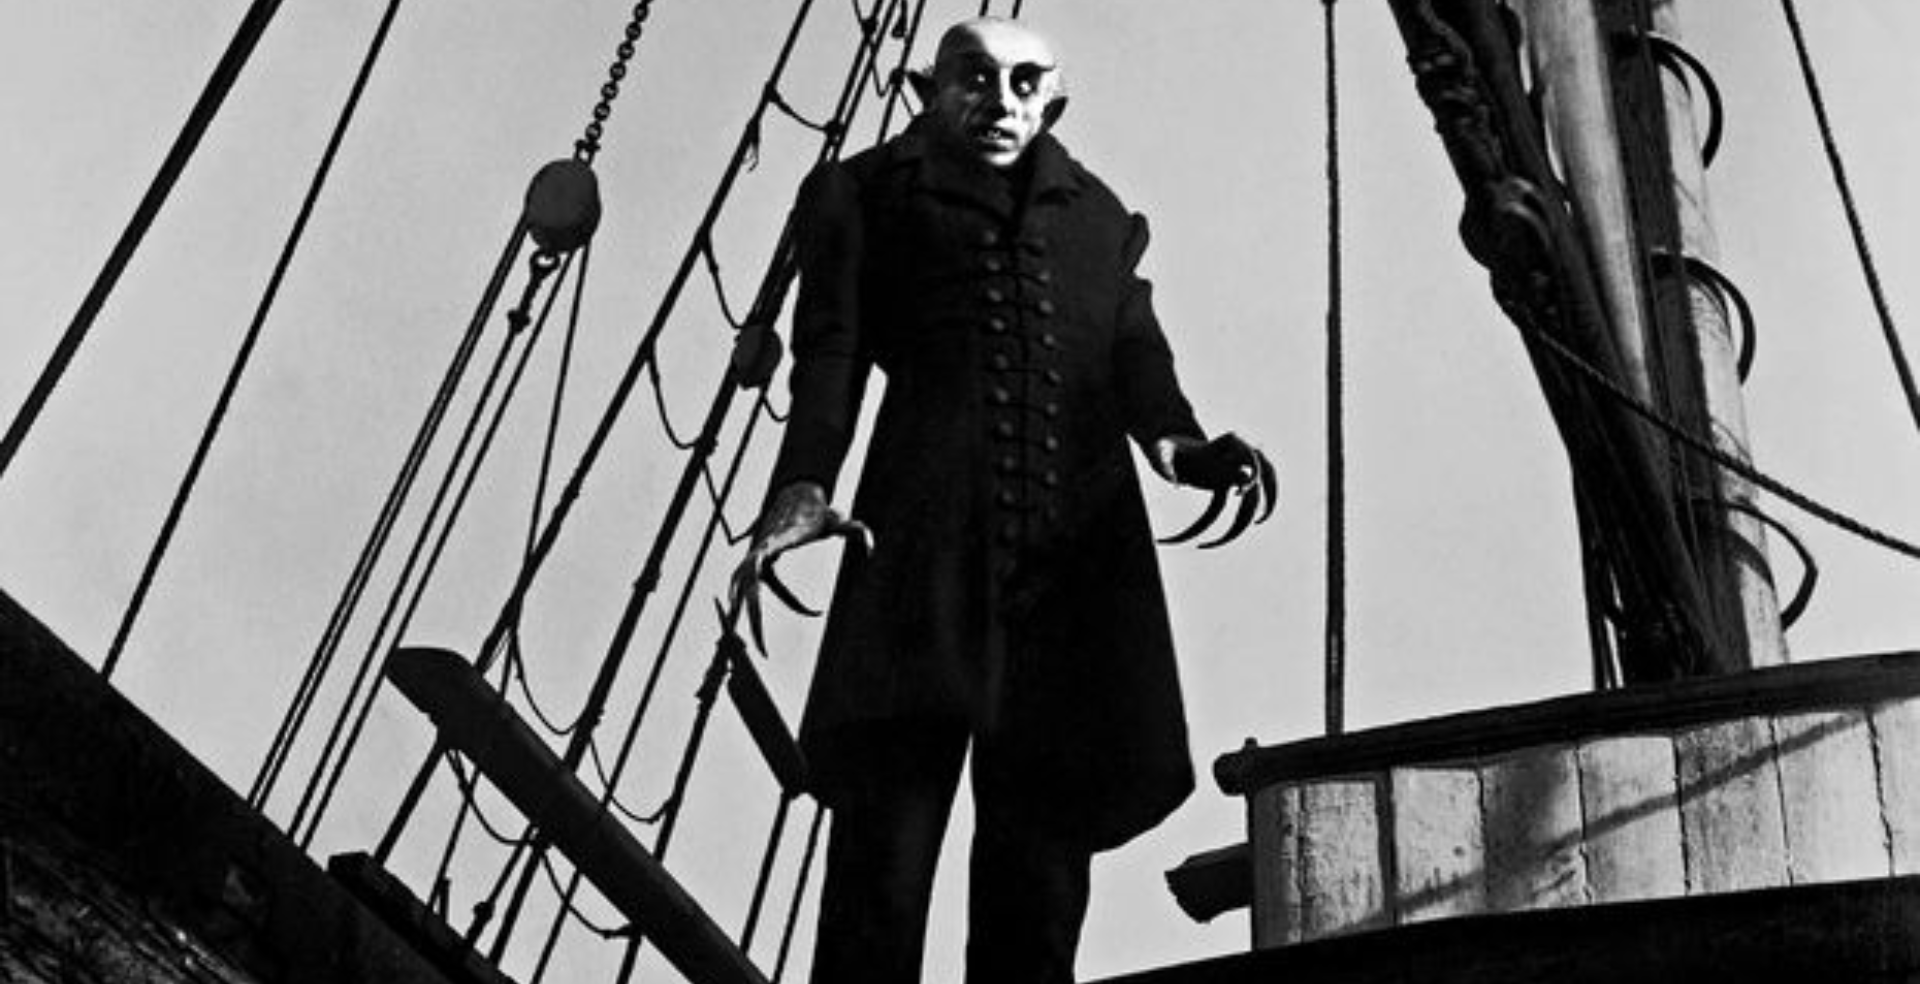 Halloween Special: NOSFERATU (1922) with LIVE soundtrack